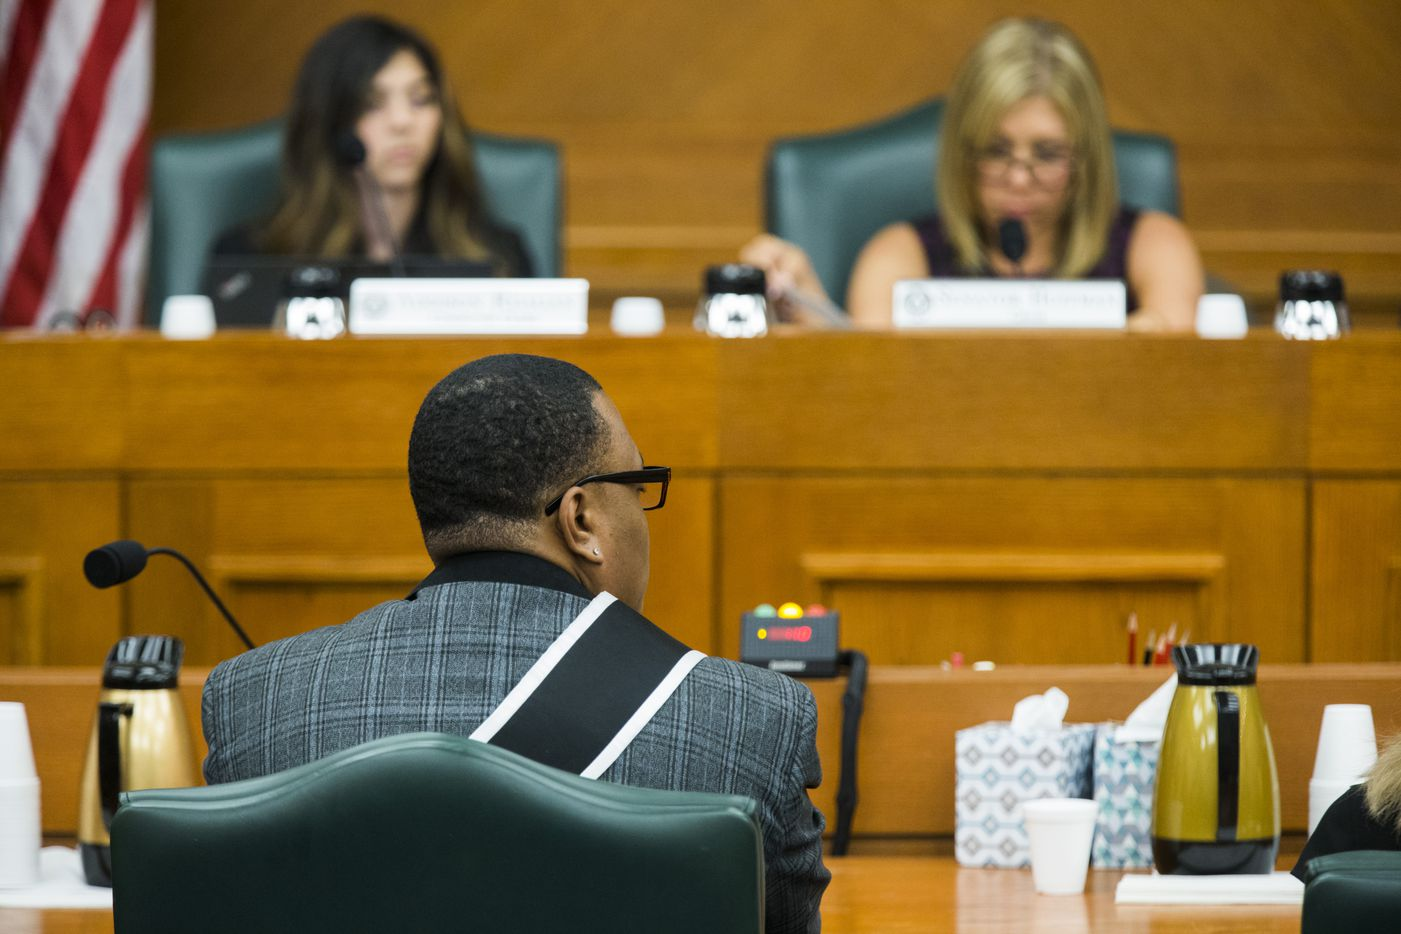 Trenton Johnson voices his opposition to the bathroom bill at a Senate State Affairs Committee public hearing on the fourth day of a special legislative session on Friday, July 21, 2017 at the Texas state capitol in Austin, Texas.